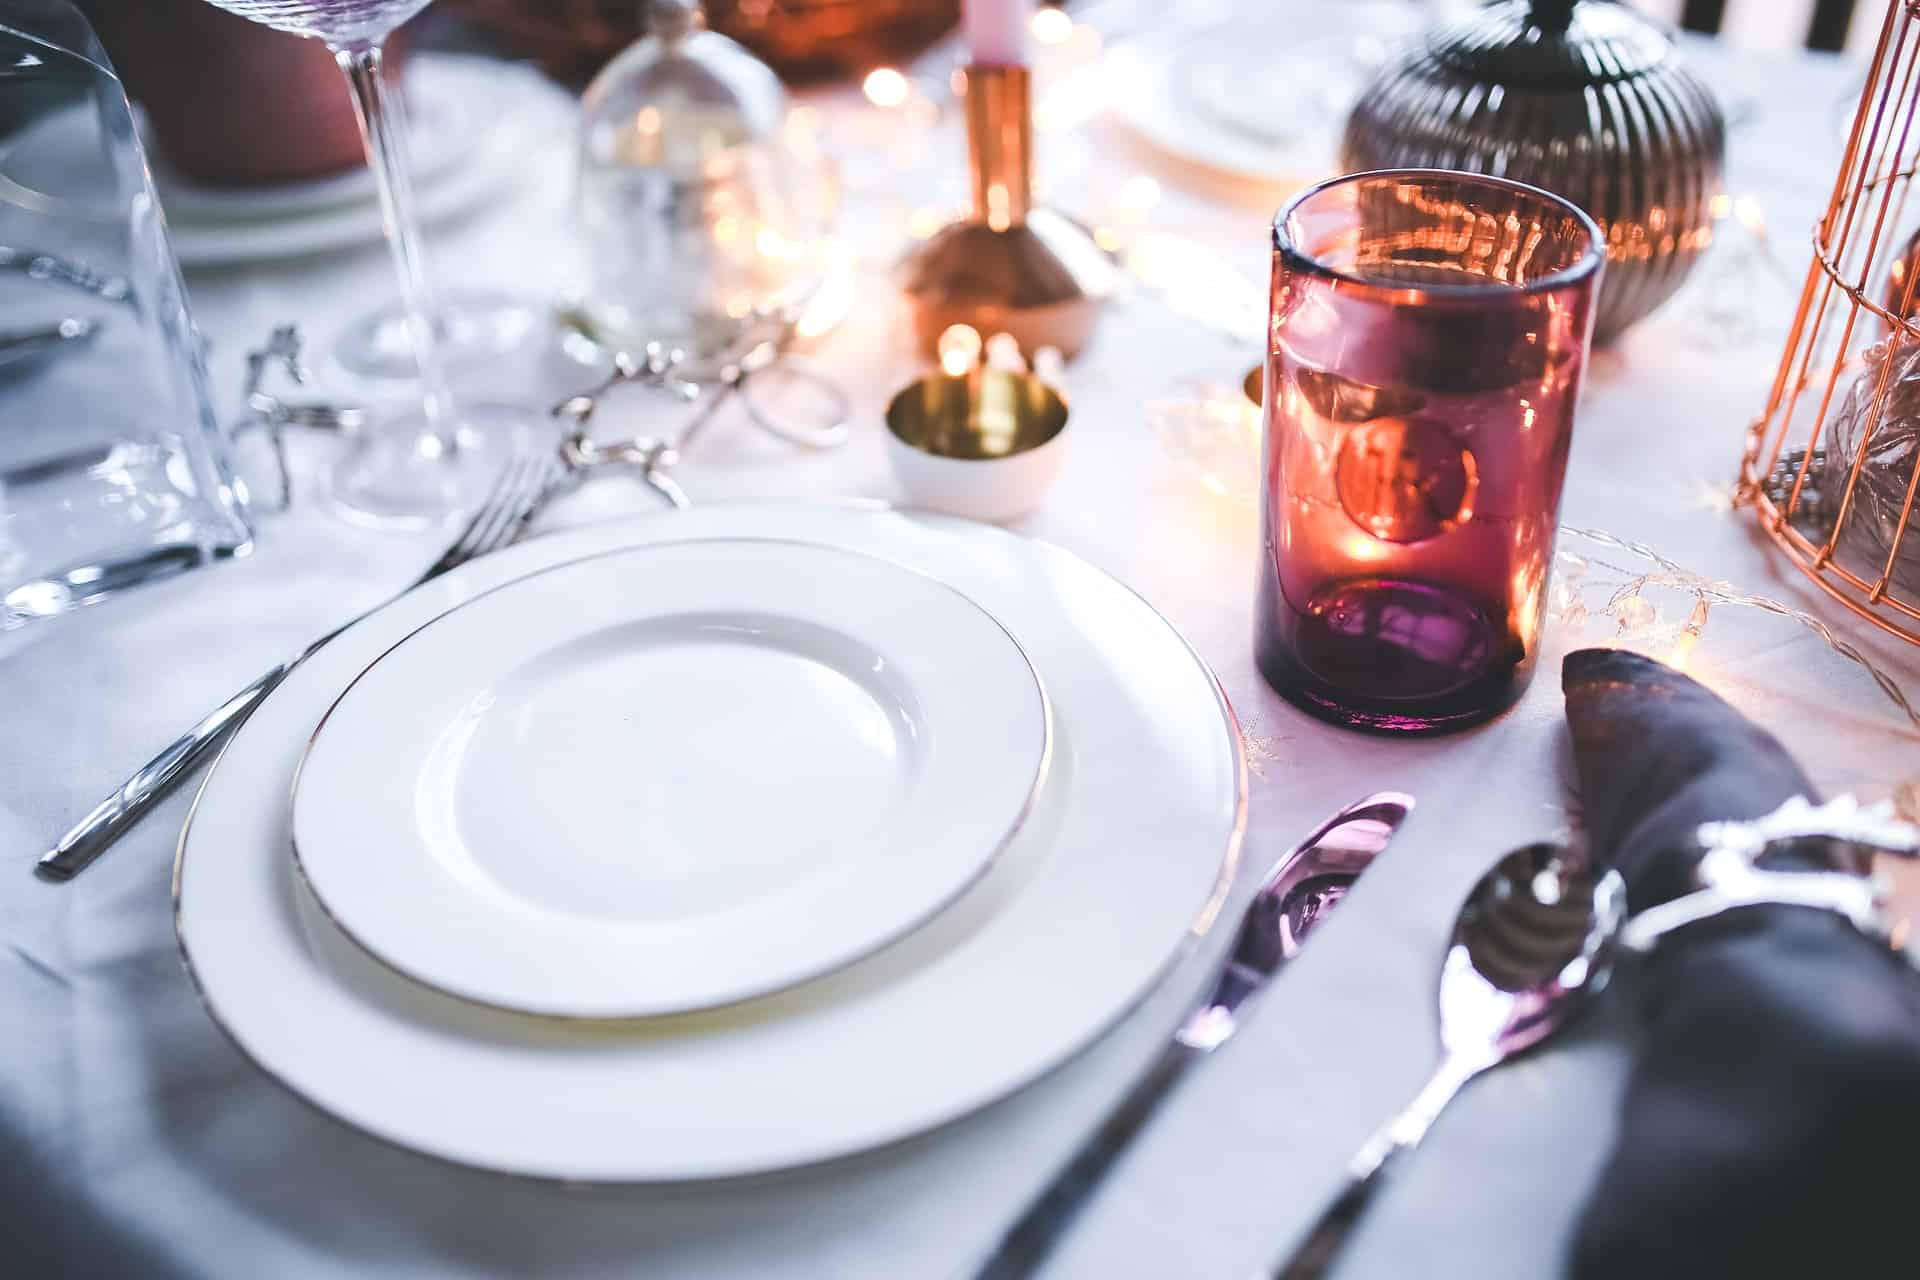 The French Table - place setting